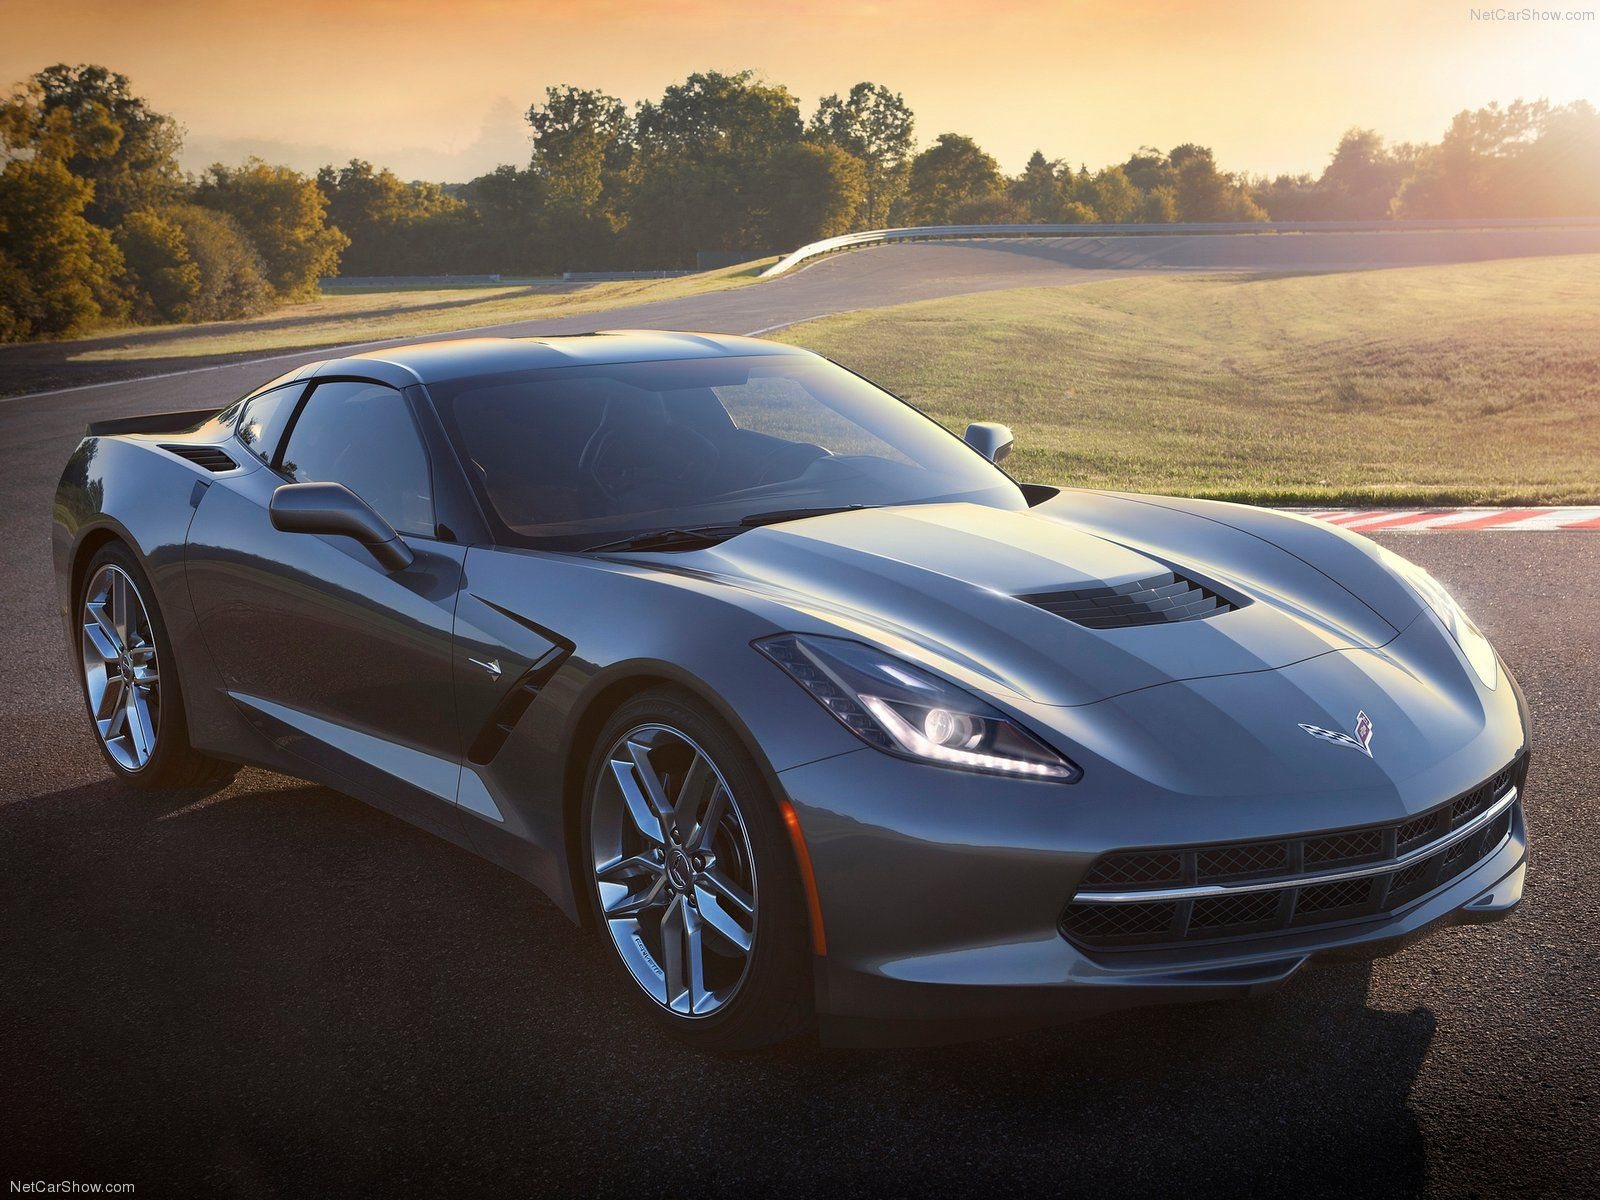 Detroit auto show: Top 10 stories to drive the 2013 North American ...